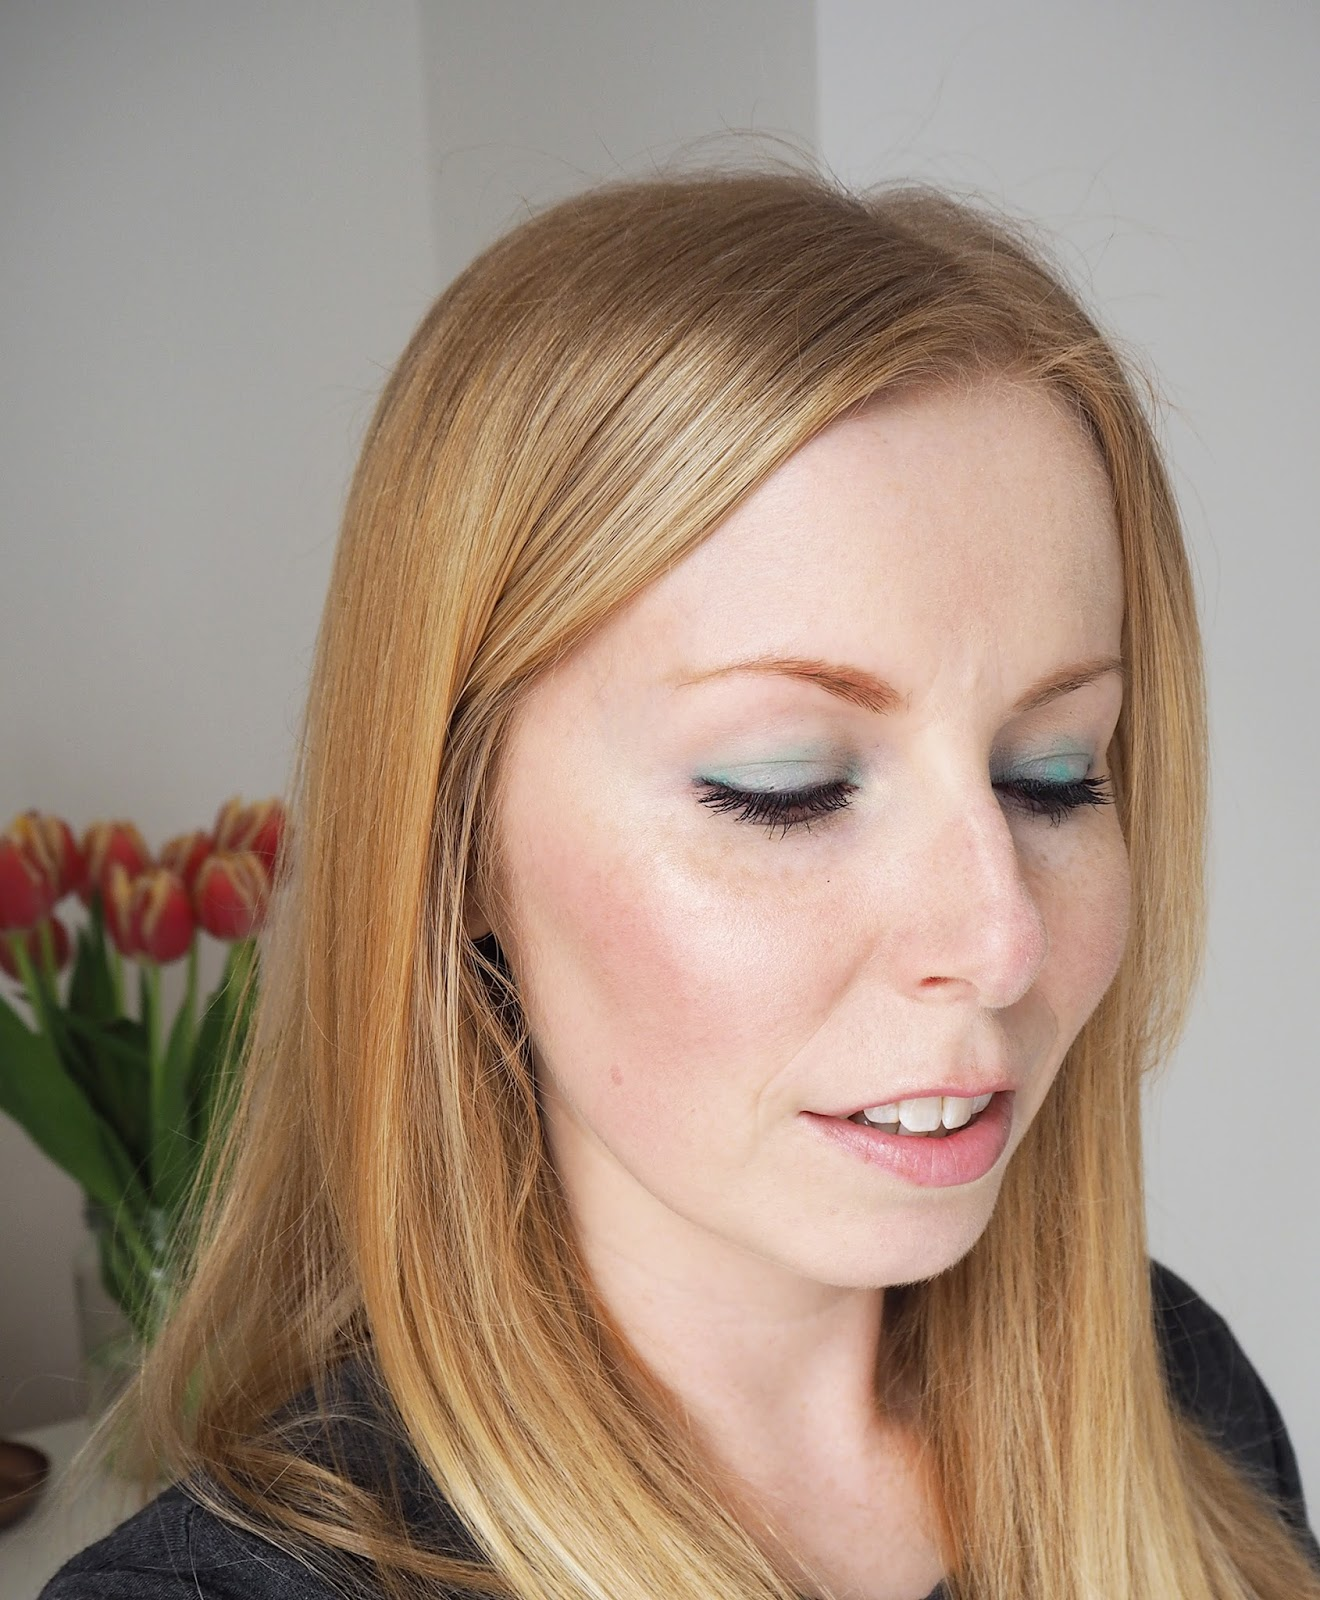 Dolce and Gabanna summer makeup reviewed swatches on pale skin